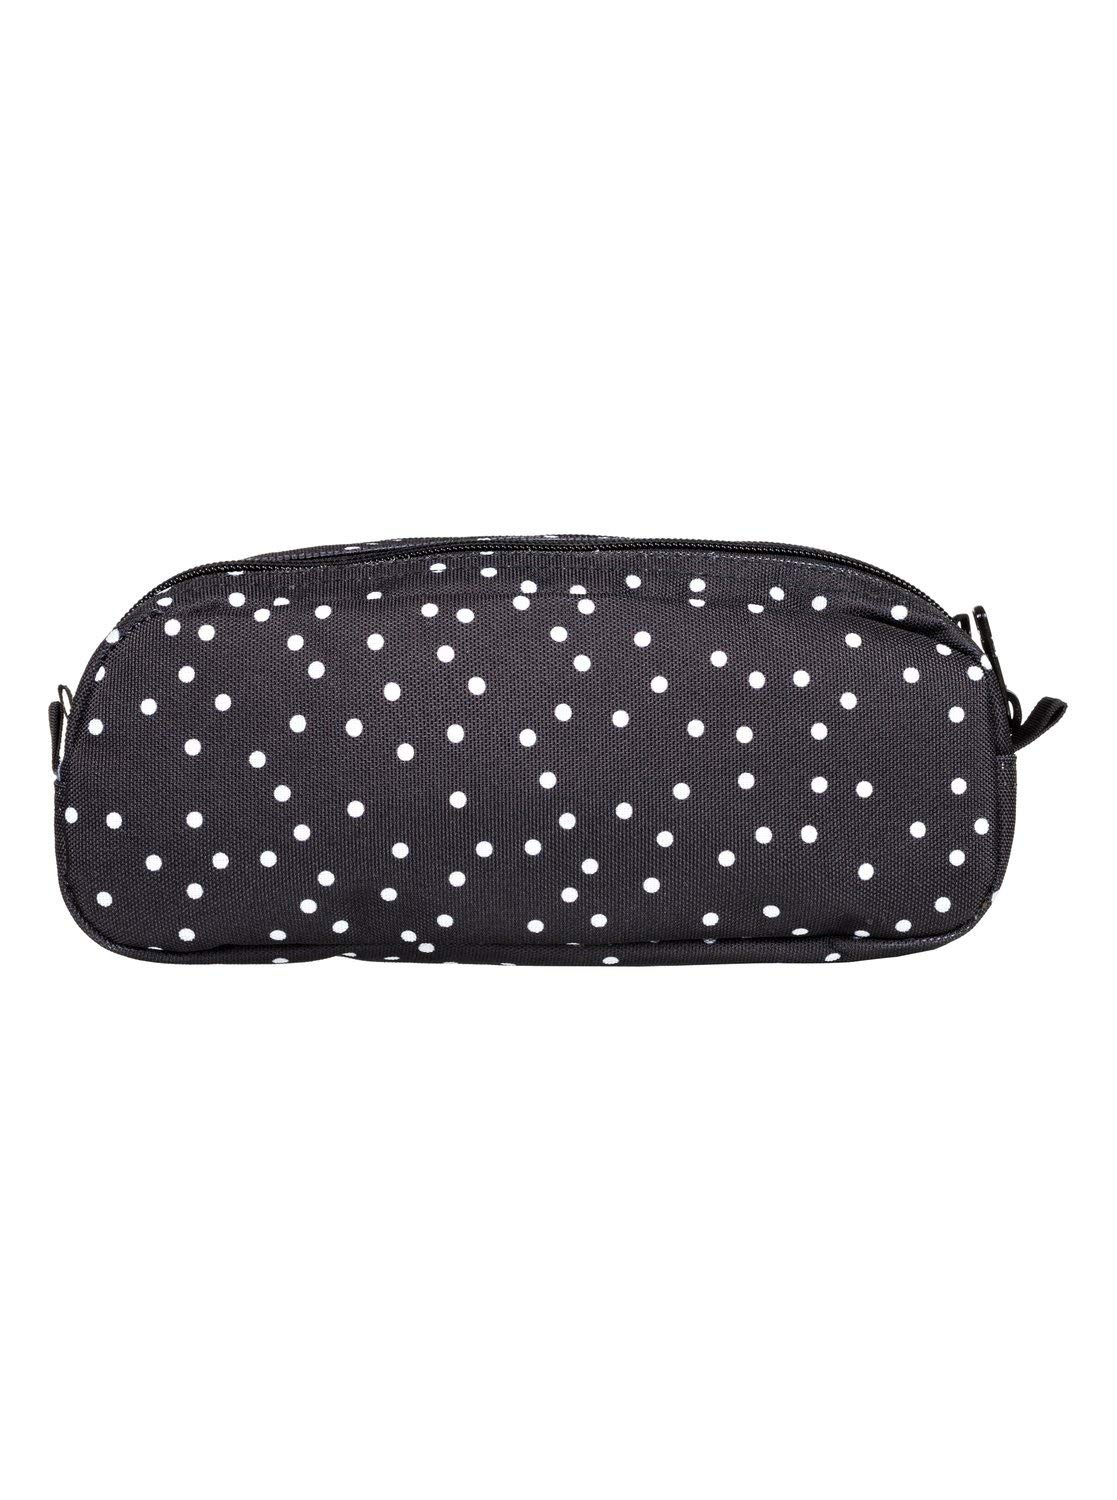 Amazon.com: Roxy Da Rock Pencil Case - True Black Dots For ...